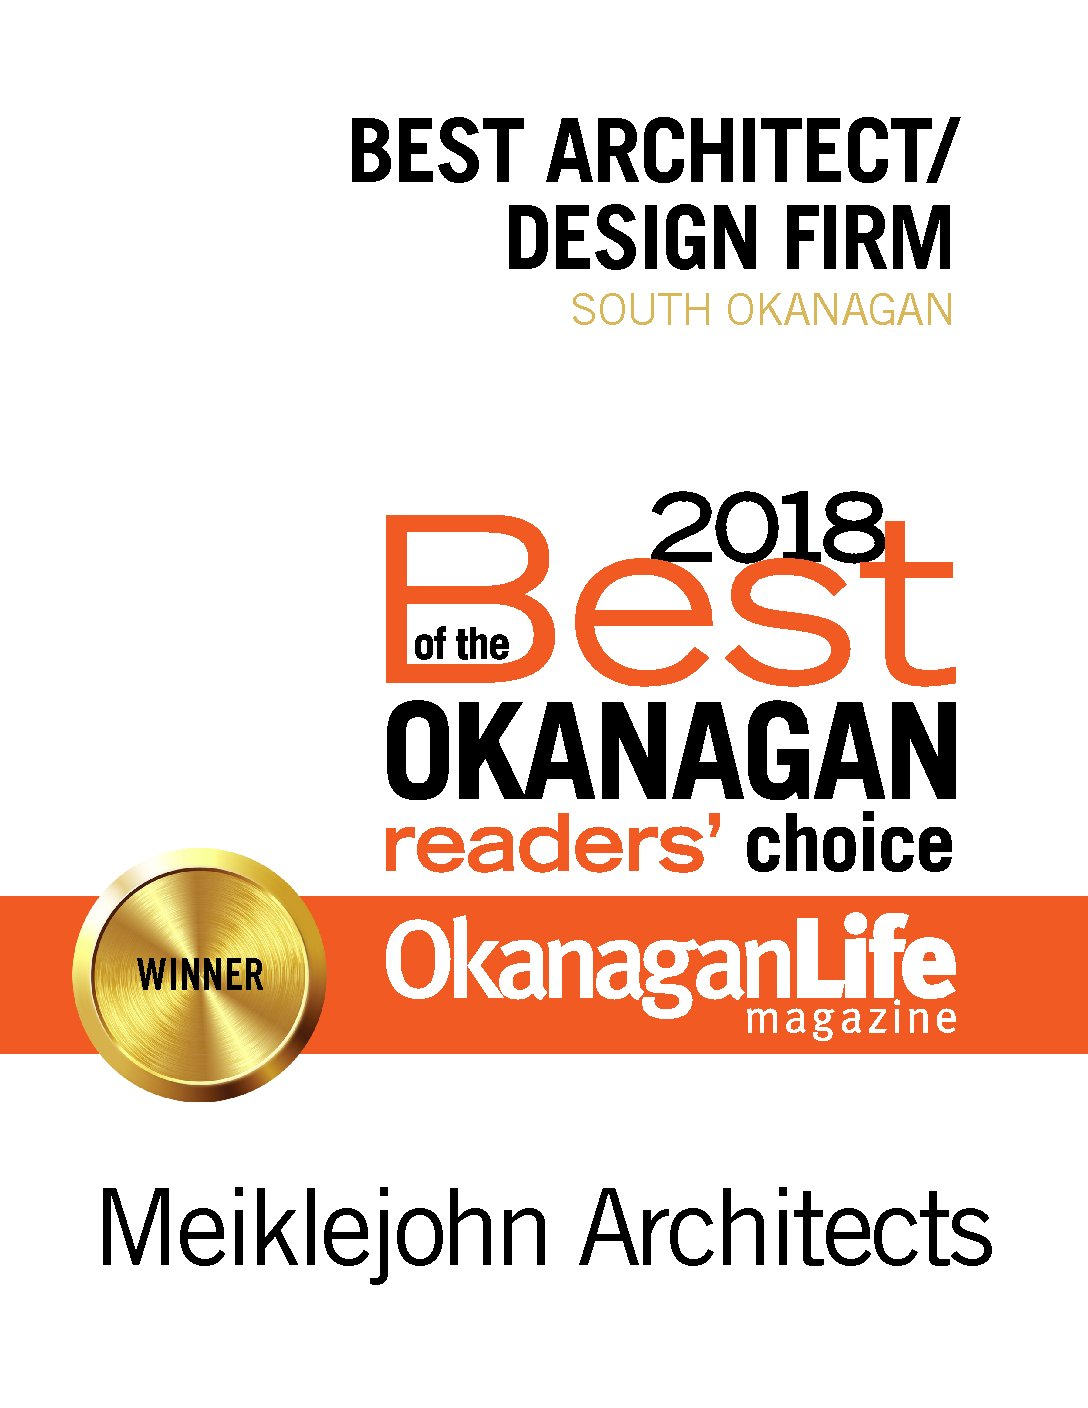 Meiklejohn Architects